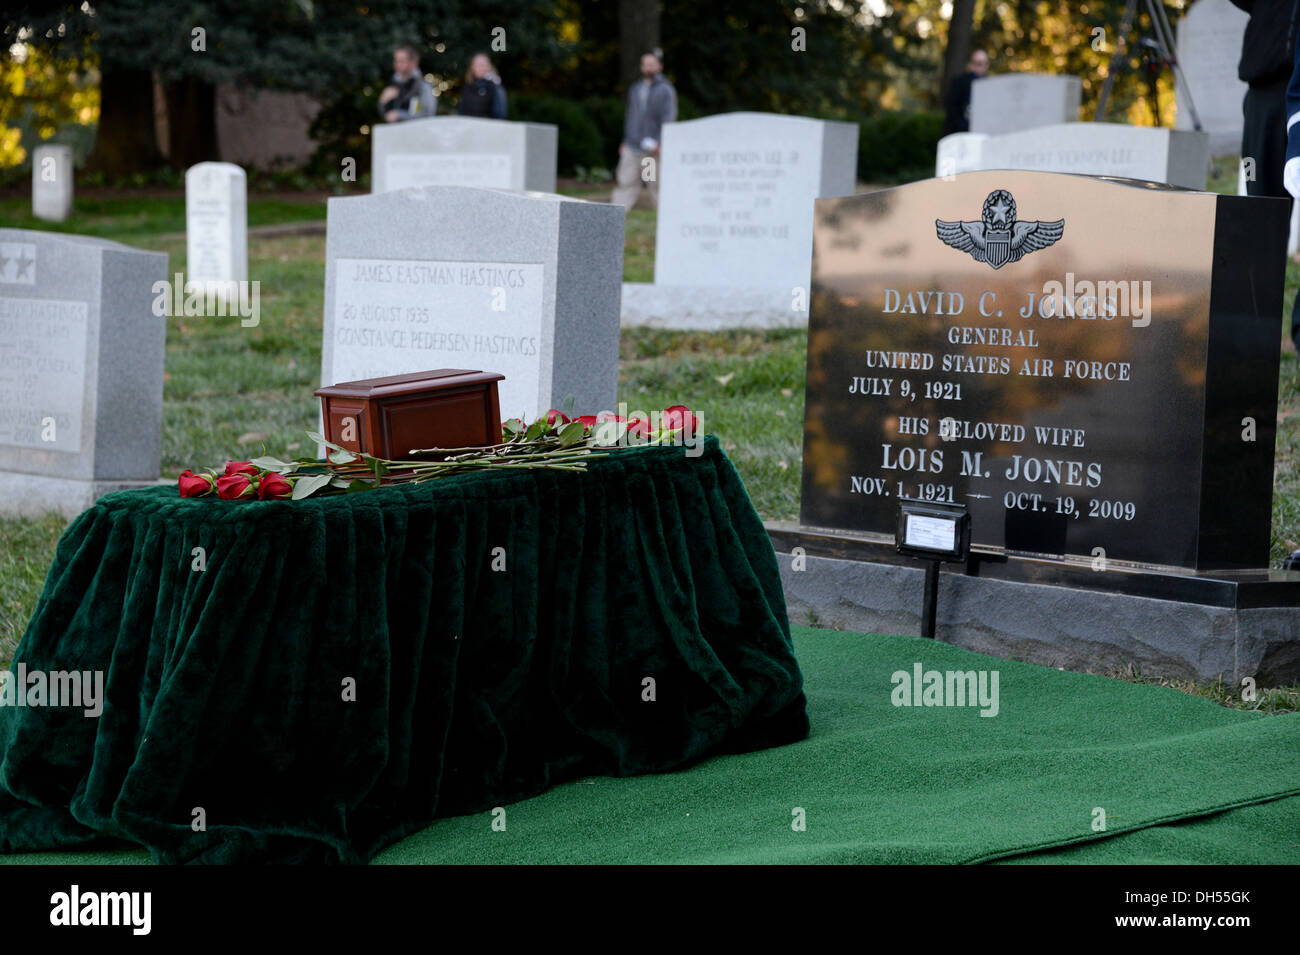 The remains of Gen. David C. Jones, former Chairman of the Joint Chiefs of Staff, is surrounded by roses lain by his family members at Arlington, Va., Oct. 25, 2013. - Stock Image